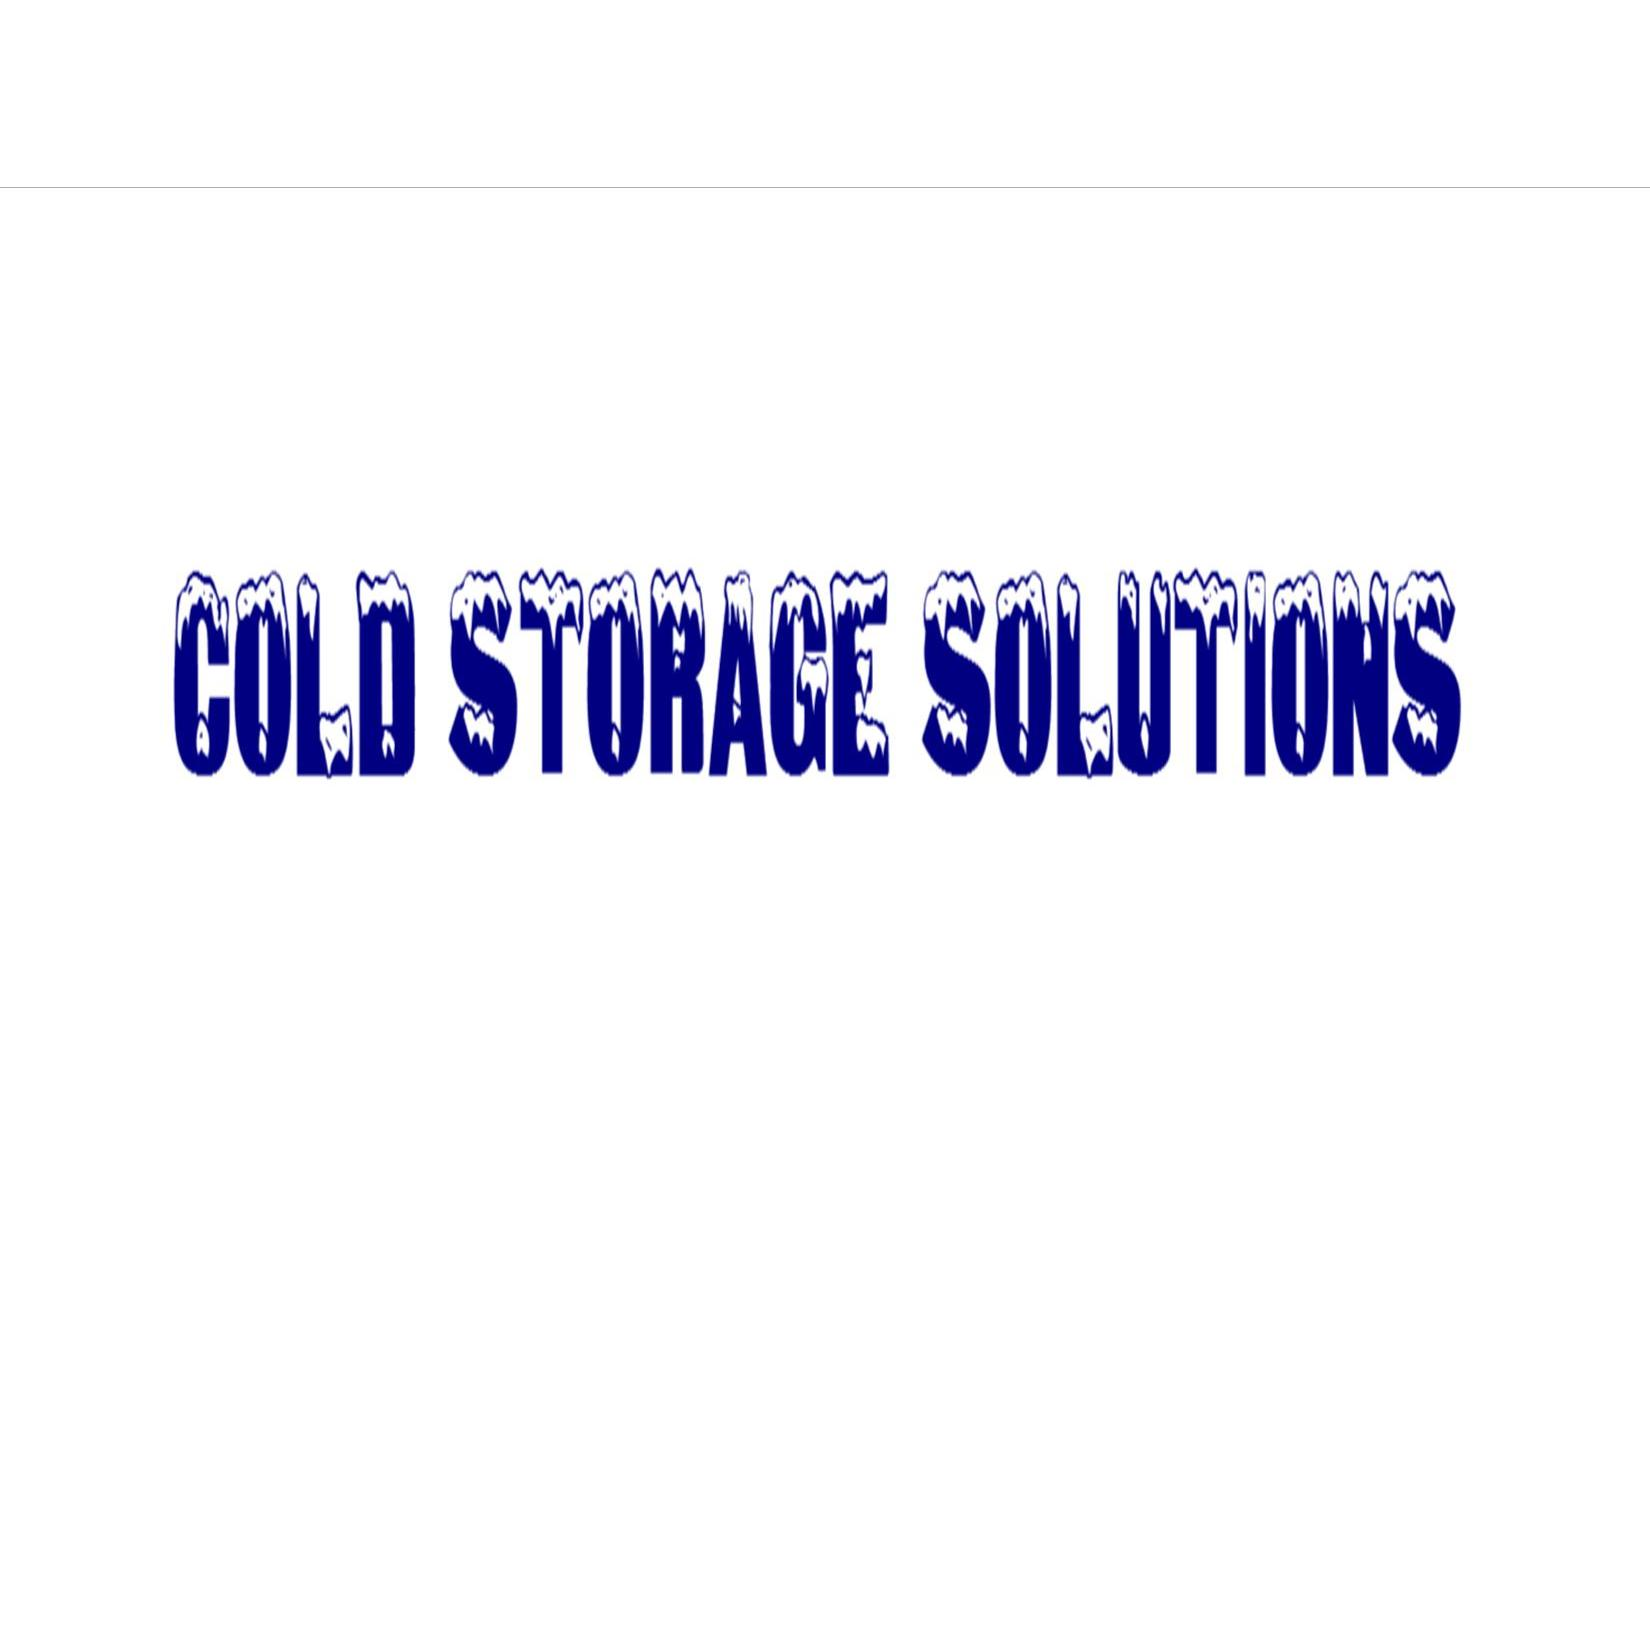 Cold Storage Solutions formely known as Ice Cold Storage